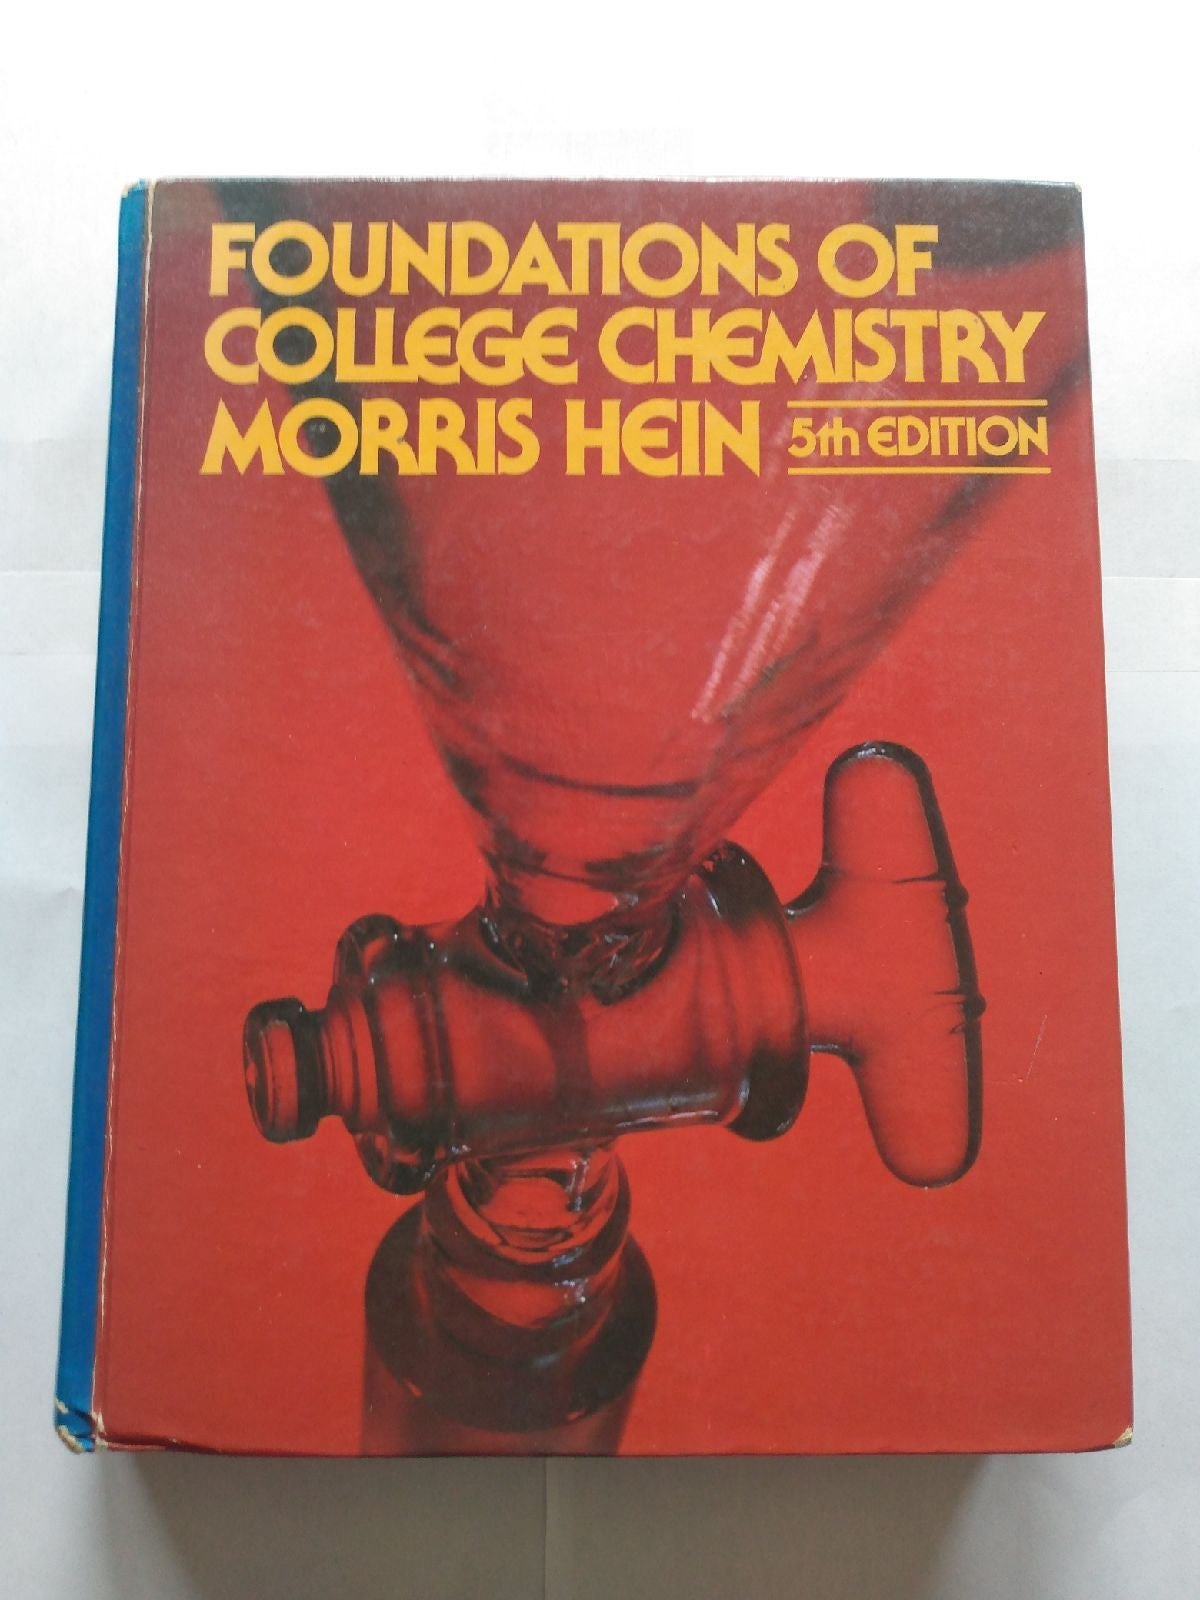 Foundations of College Chemistry 5th Edition (1982)